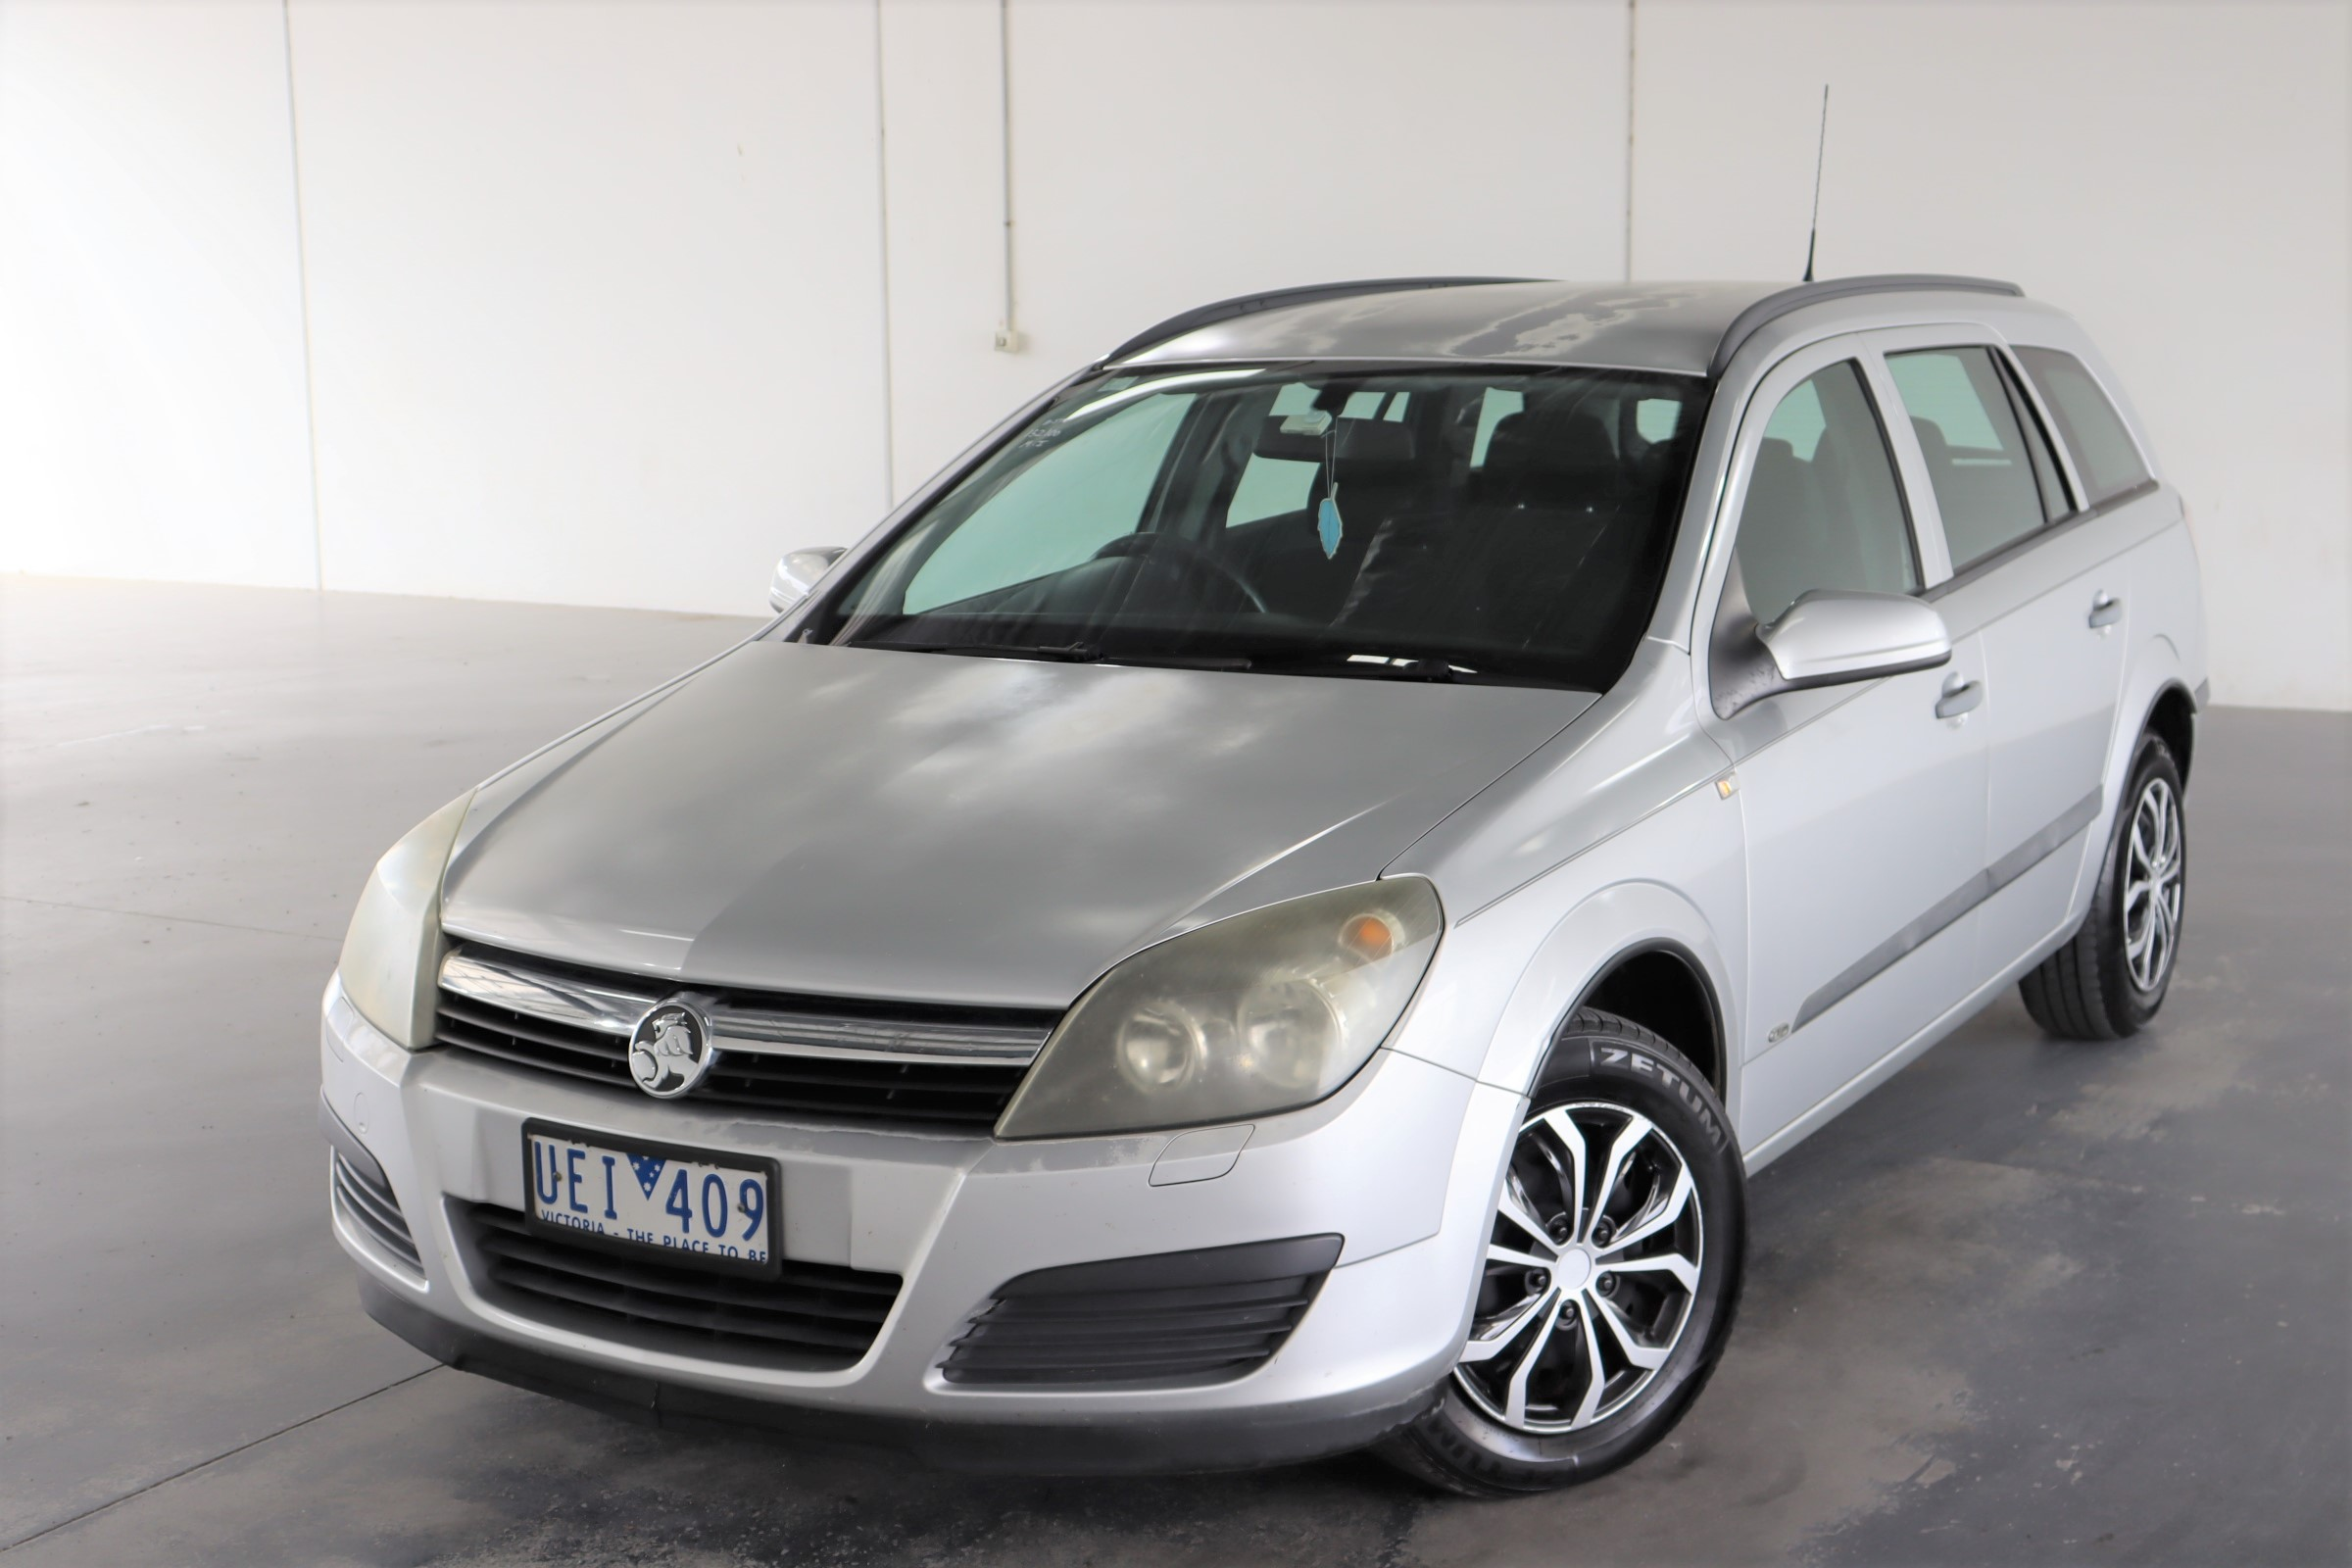 2006 Holden Astra CD AH Automatic Wagon